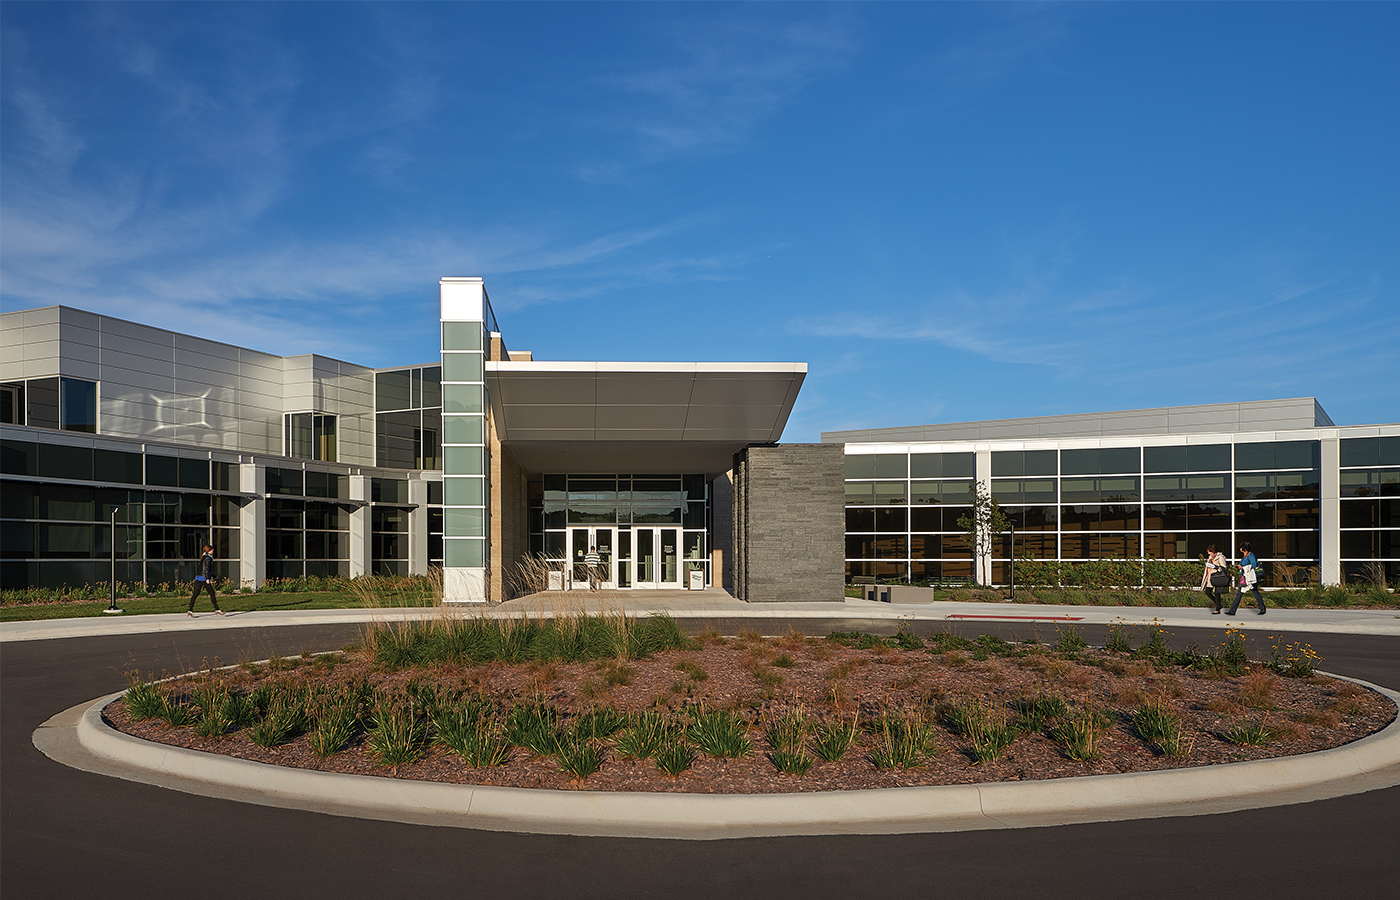 Purdue University Dworkin Student Activities Center